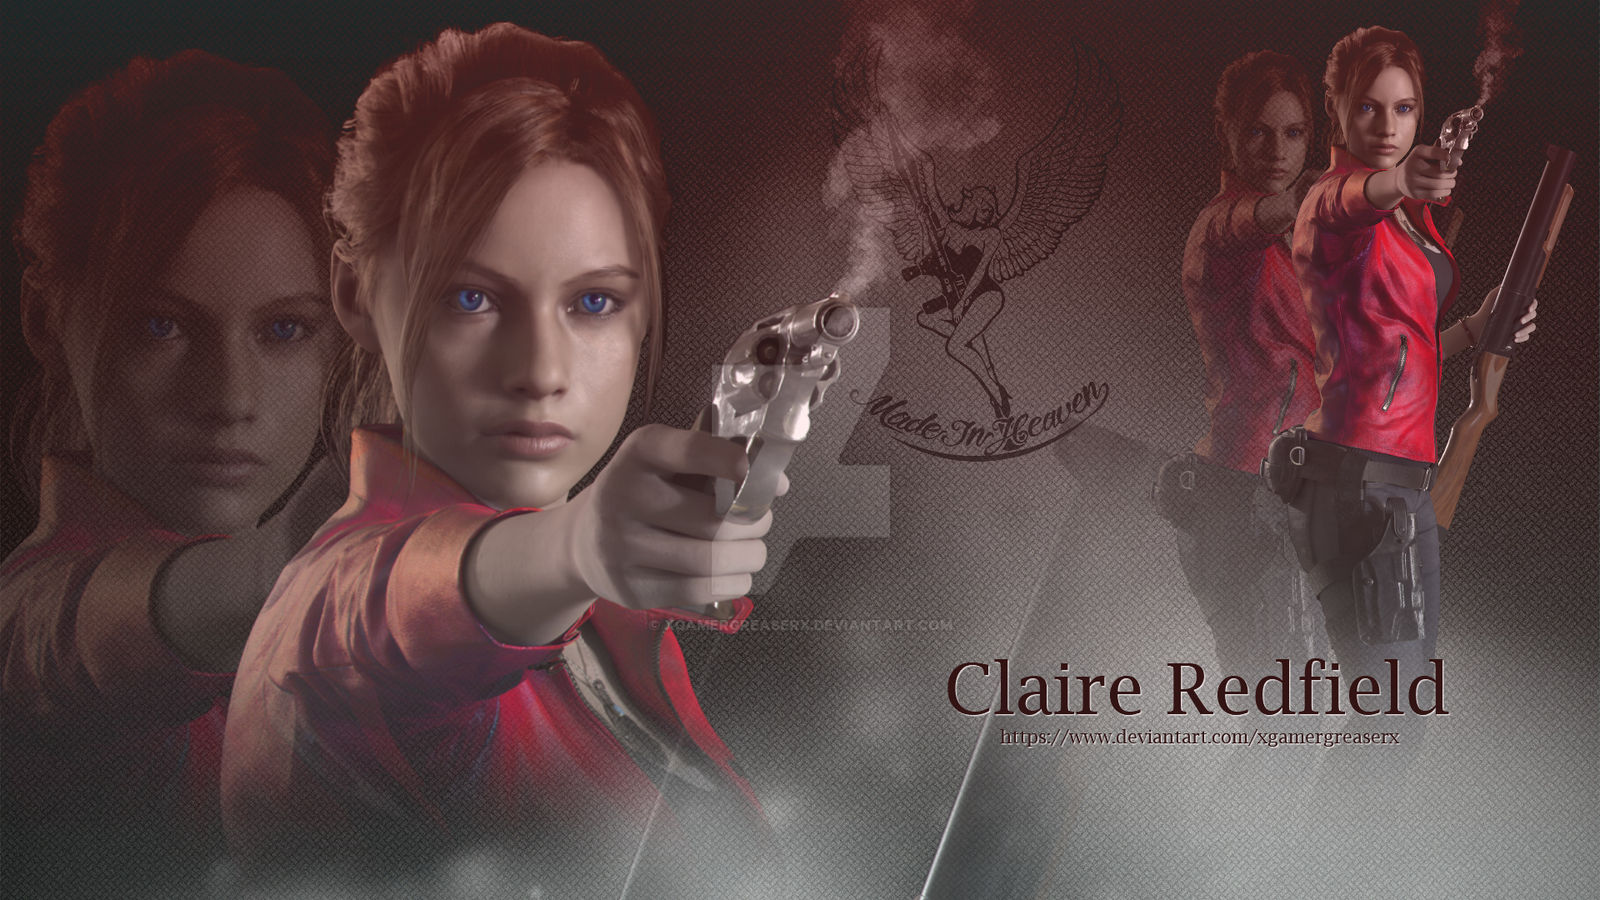 Resident Evil 2 Remake Claire Redfield Wallpaper 3 By